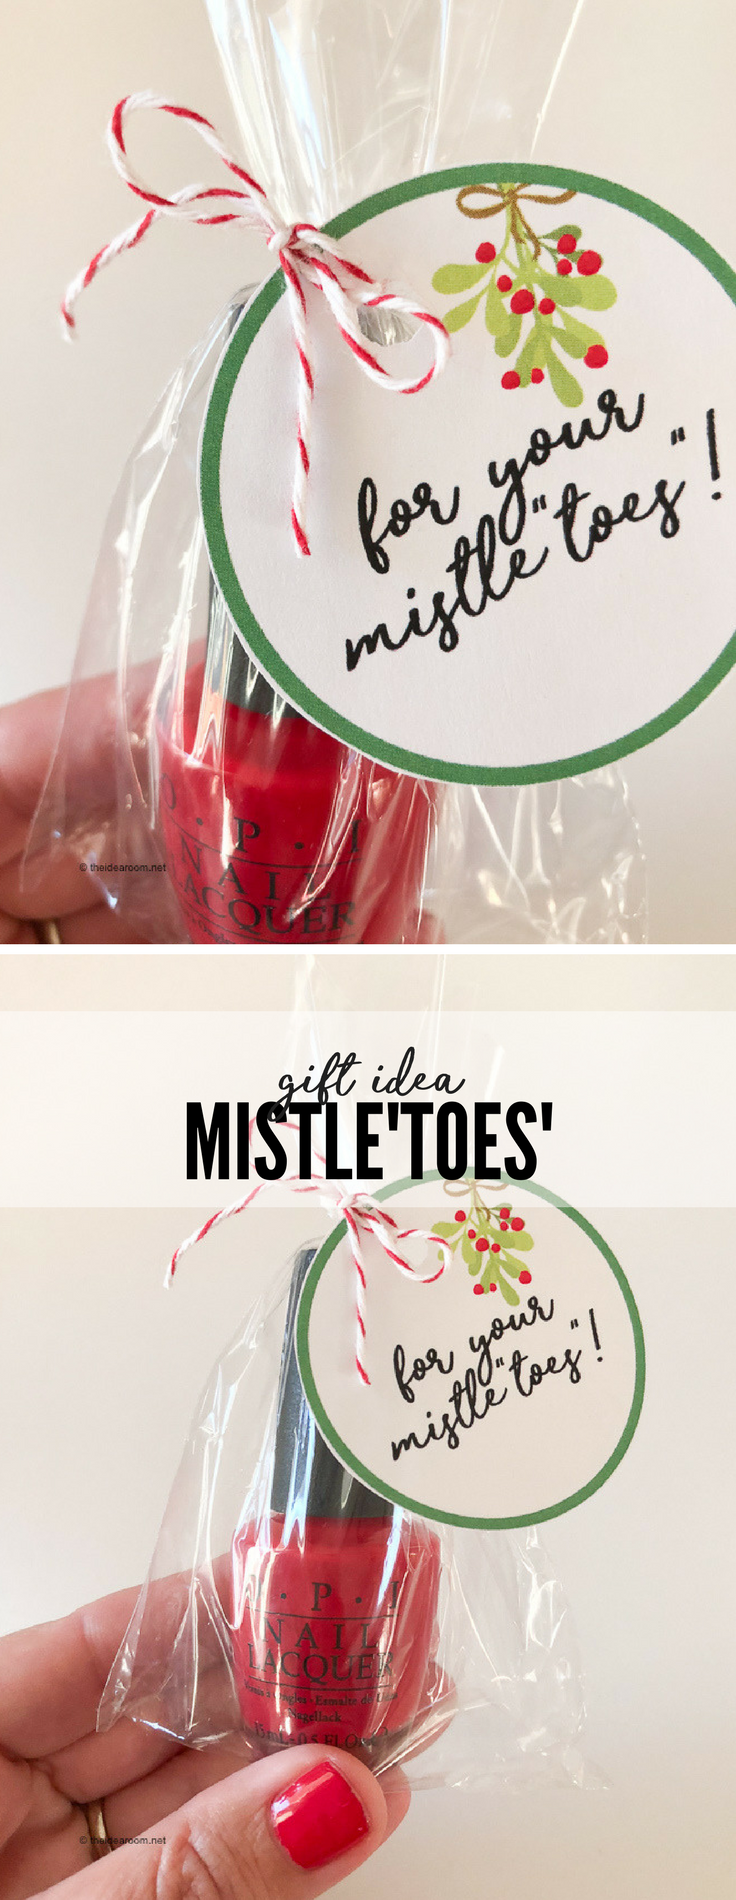 photo relating to For Your Mistletoes Printable referred to as Mistletoes Nail Polish Reward Concept